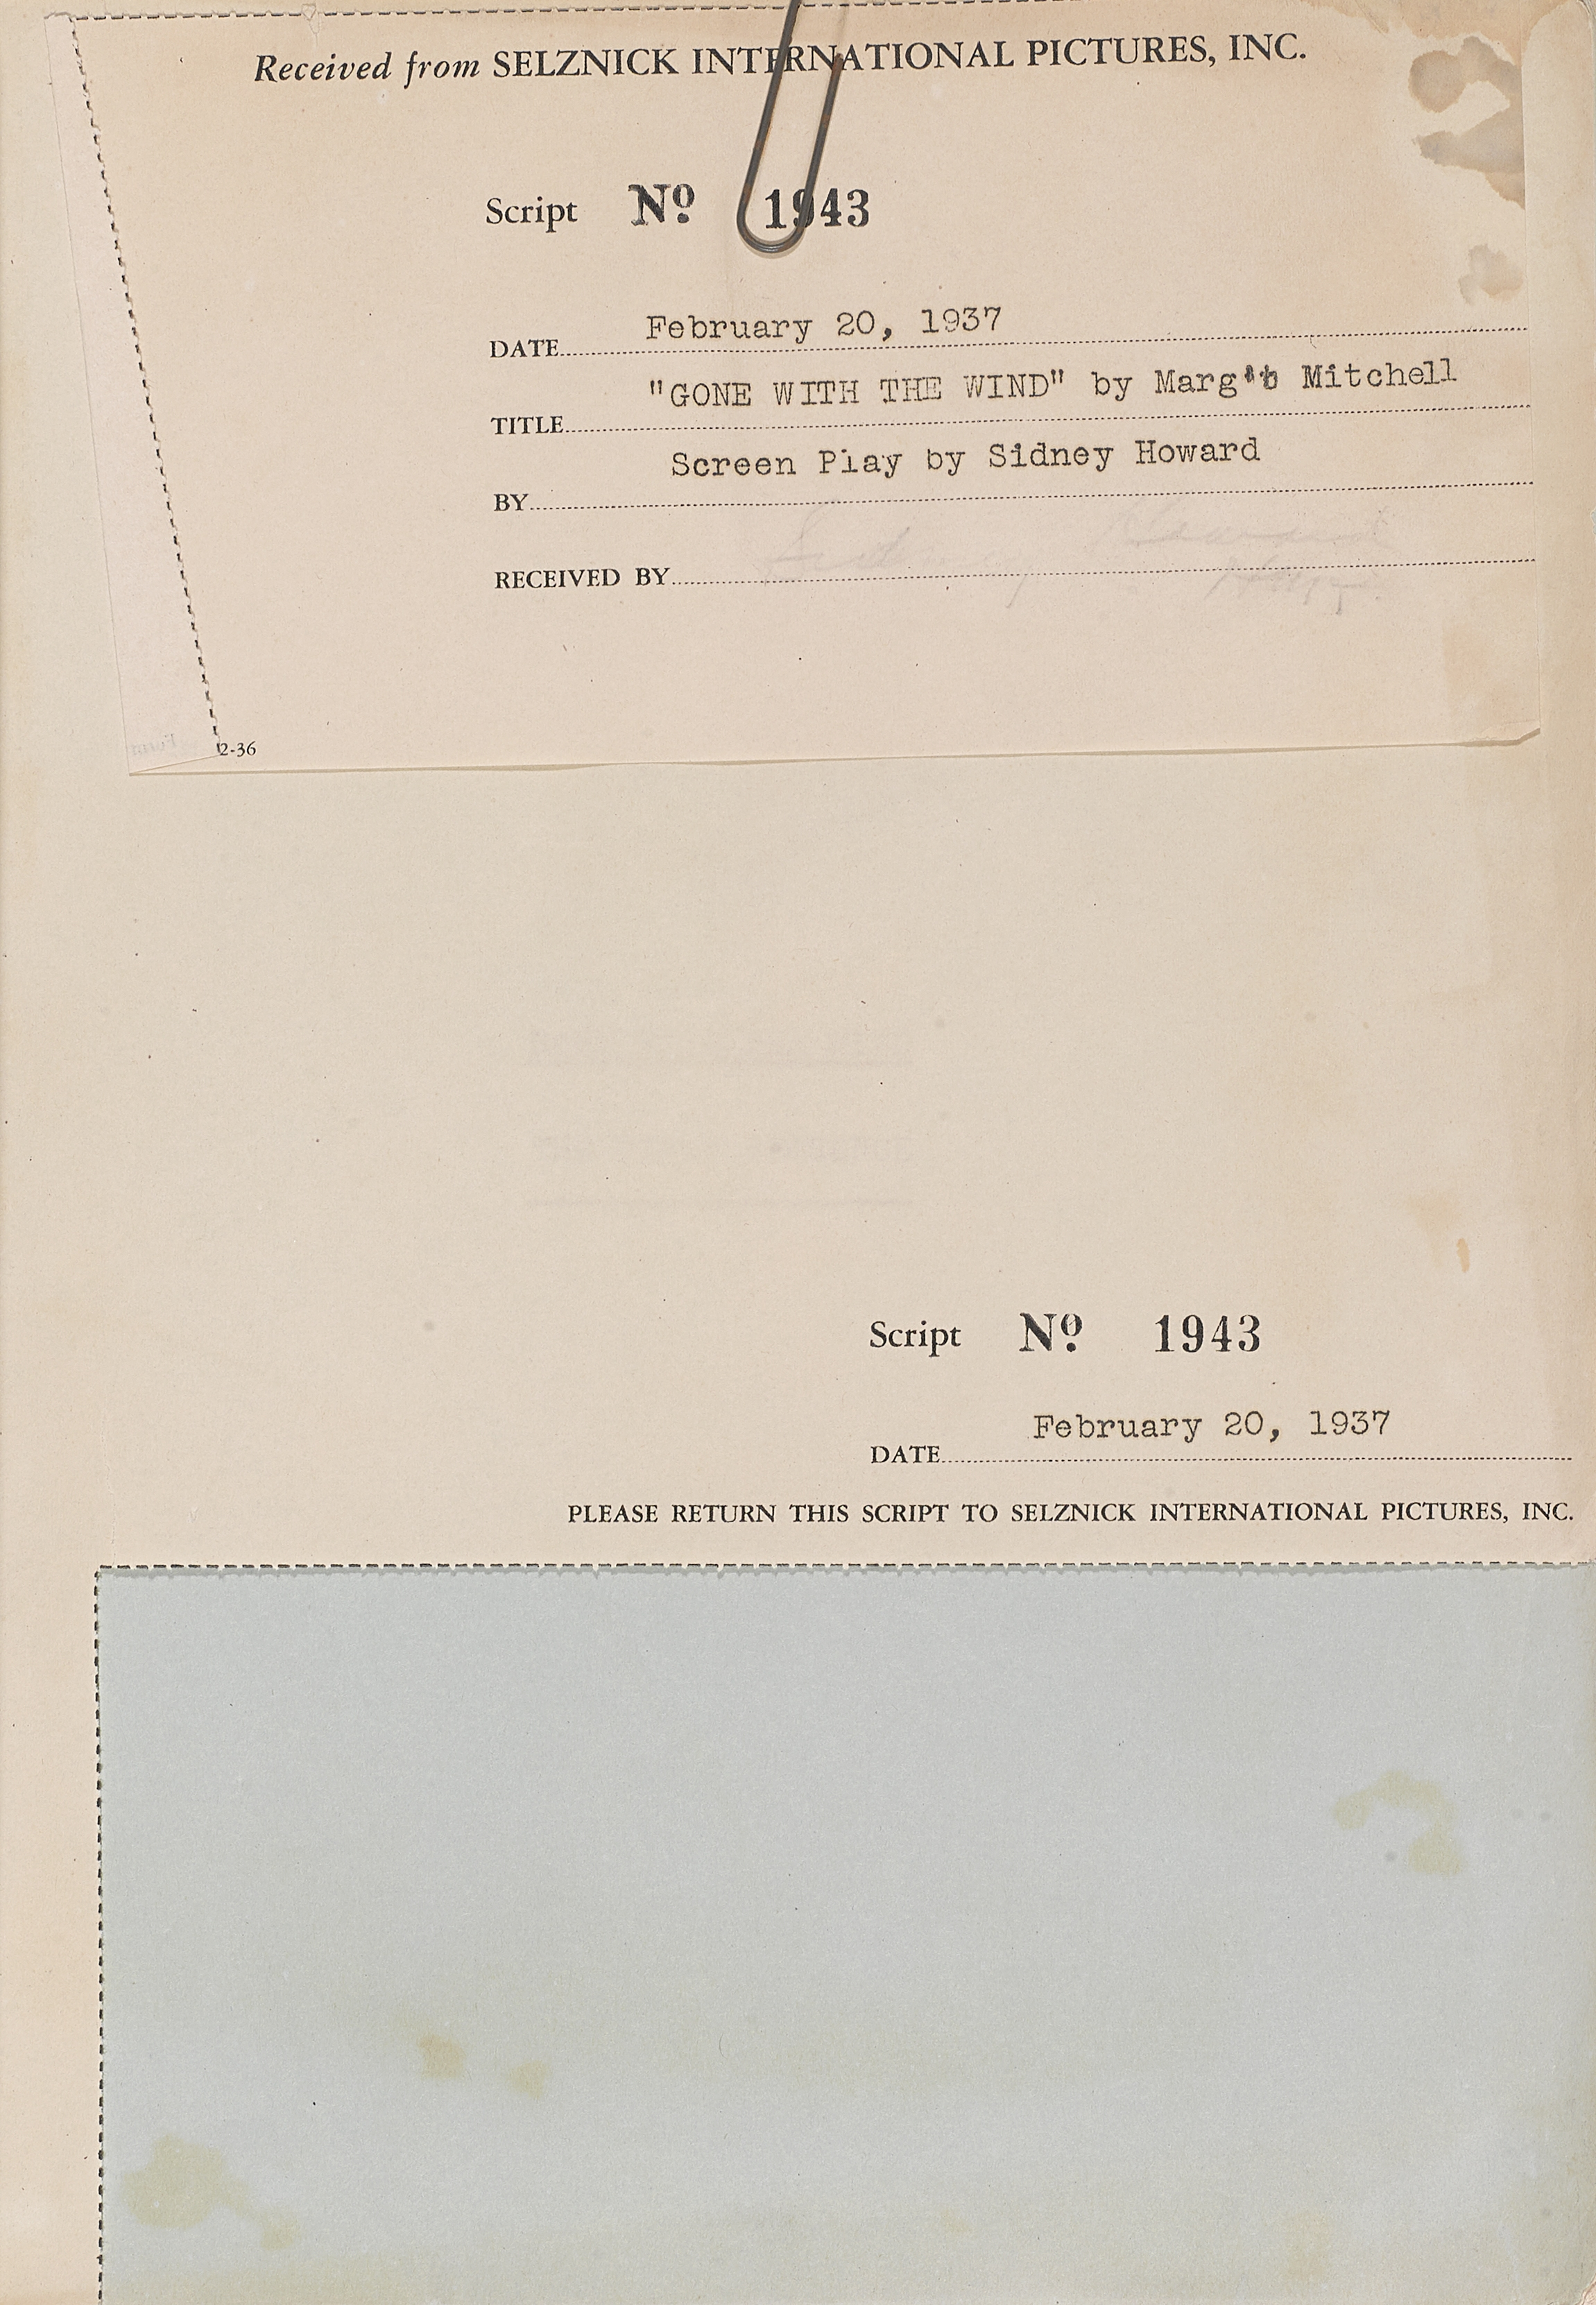 Lot 1034 - A Gone With the Wind screenplay